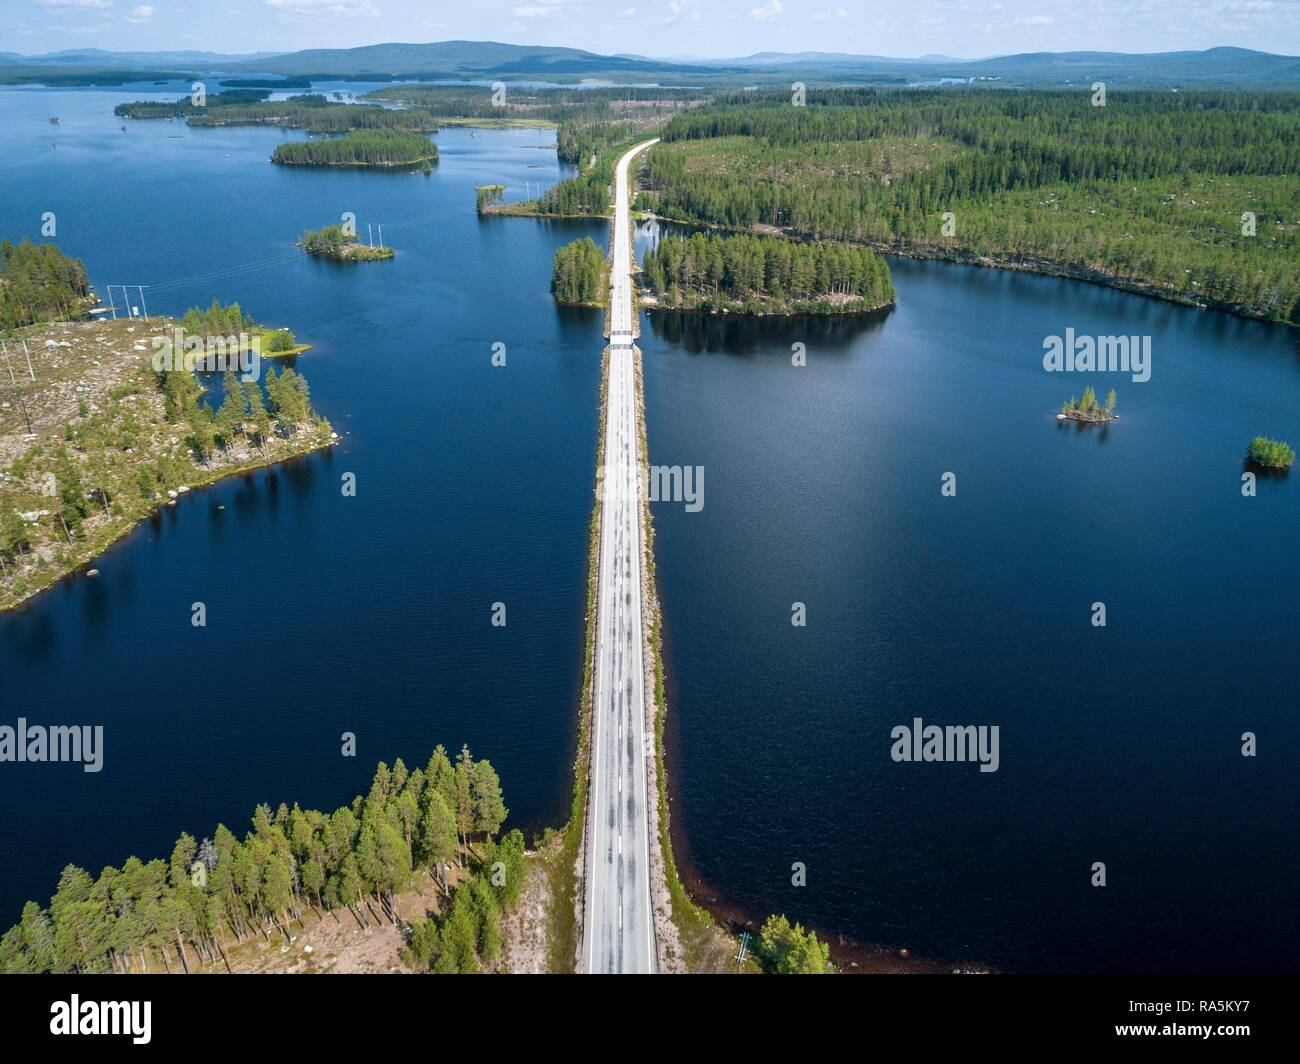 Drone shot, road runs across sea, boreal, arctic conifers, forest, Junsele, Västernorrlands län, Sweden - Stock Image